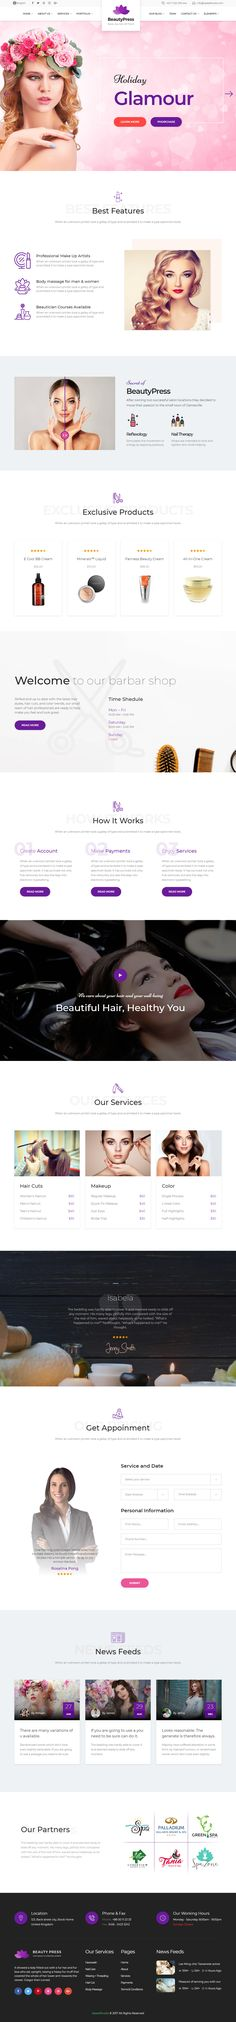 BeautyPress is Premium full Responsive Retina HTML5 Template. Bootstrap 4 Framework. Parallax Scrolling. #WorkingAppointmentBookingForm. If you like this #BeautySalon Template visit our handpicked list of best HTML Beauty and #SpaTemplates at: http://www.responsivemiracle.com/best-html-spa-and-beauty-templates/